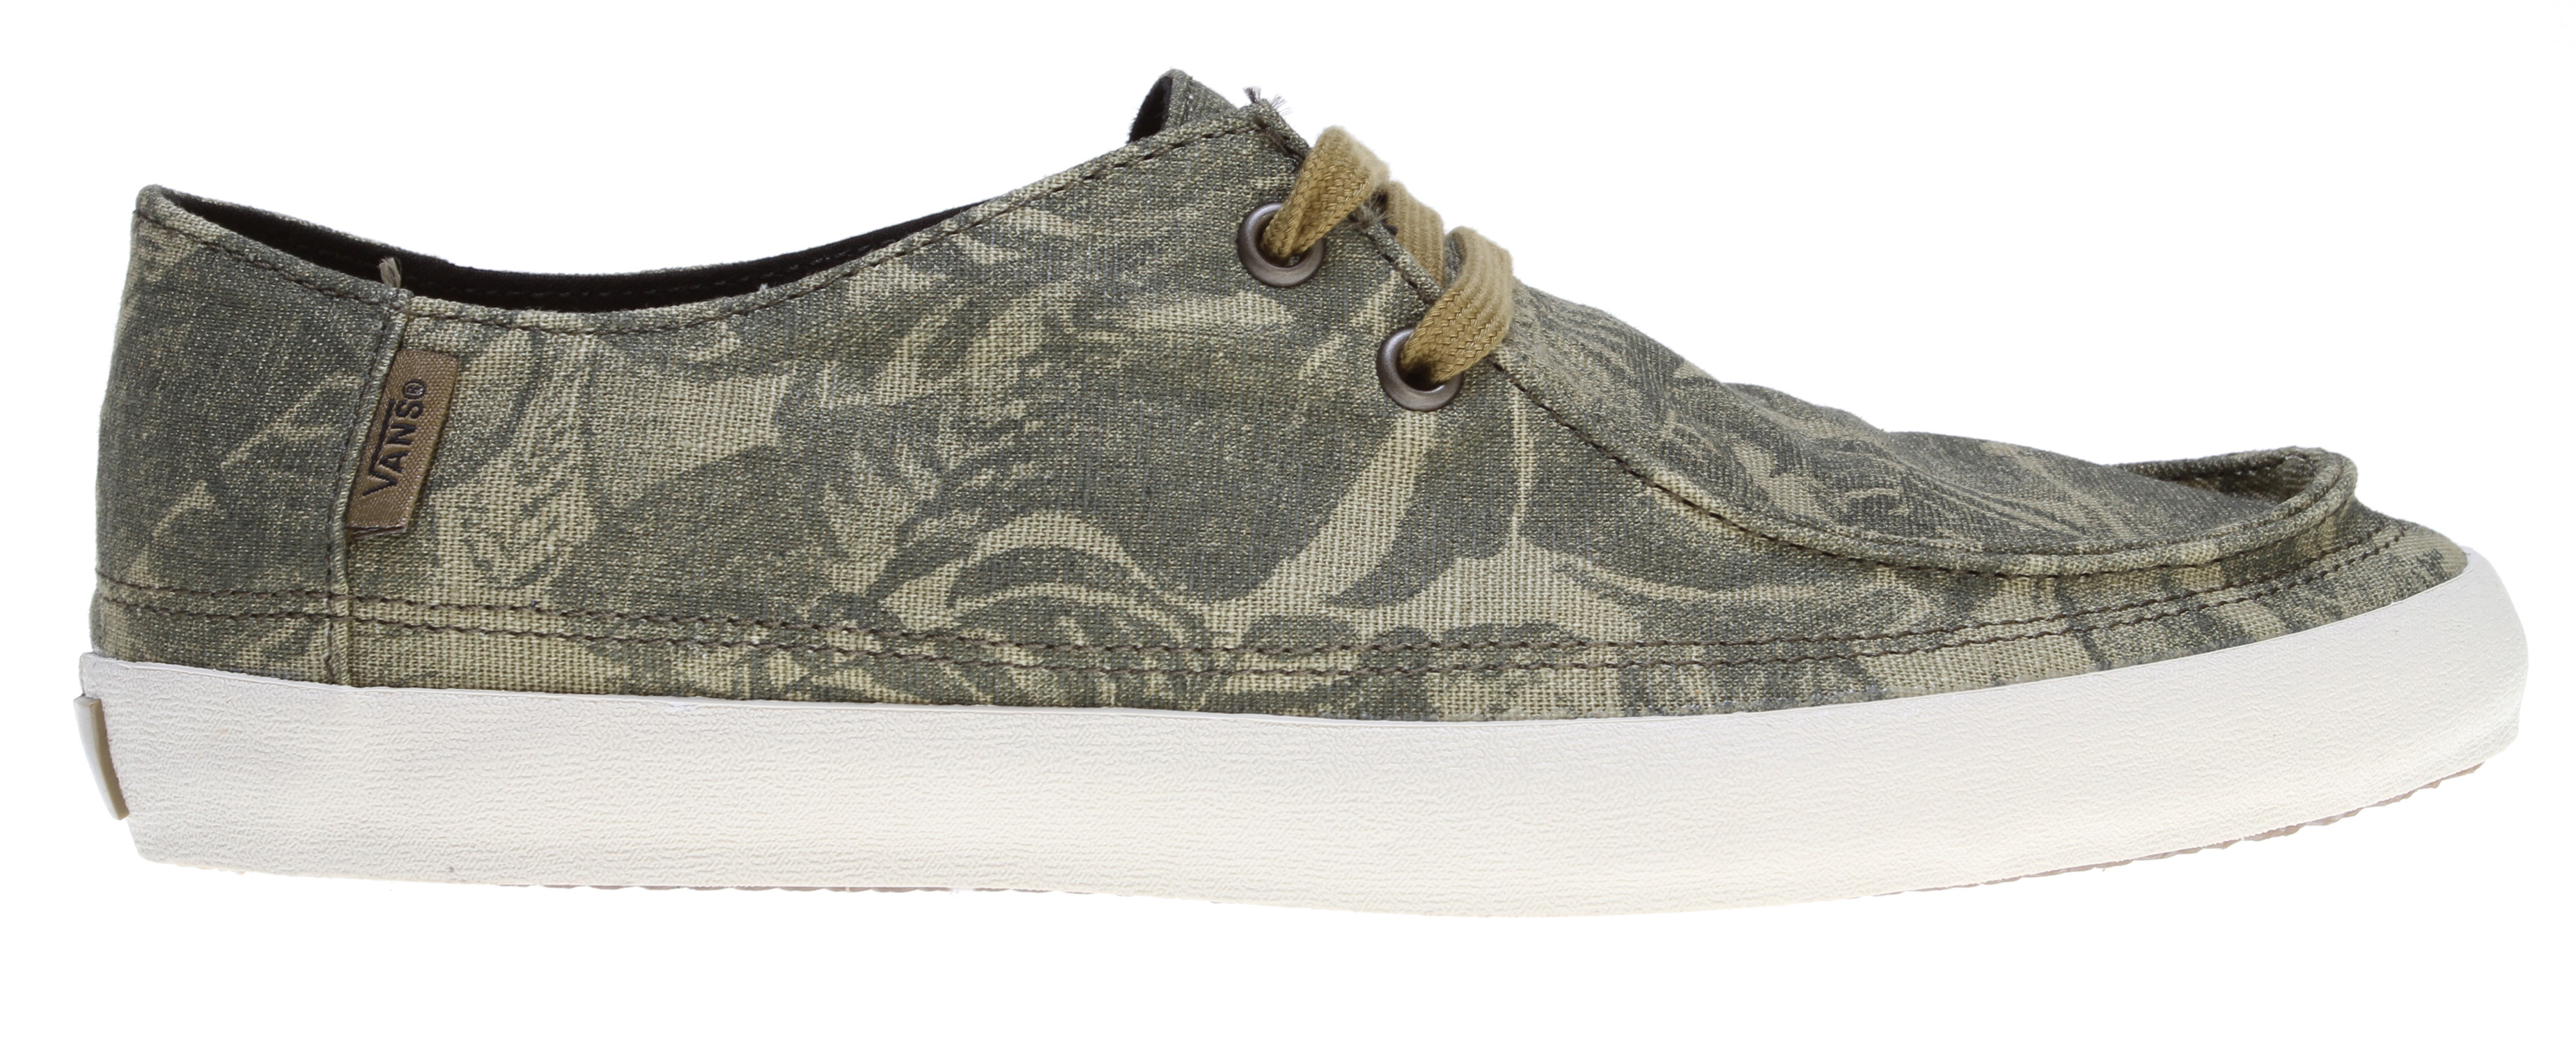 Skateboard Key Features of the Vans Rata Vulc Skate Shoes: Hemp, Recycled pet or canvas uppers Super comfy vanslite footbed Flexi vulc gum rubber outsole Water-based inks and glues Classic fit style - $45.95